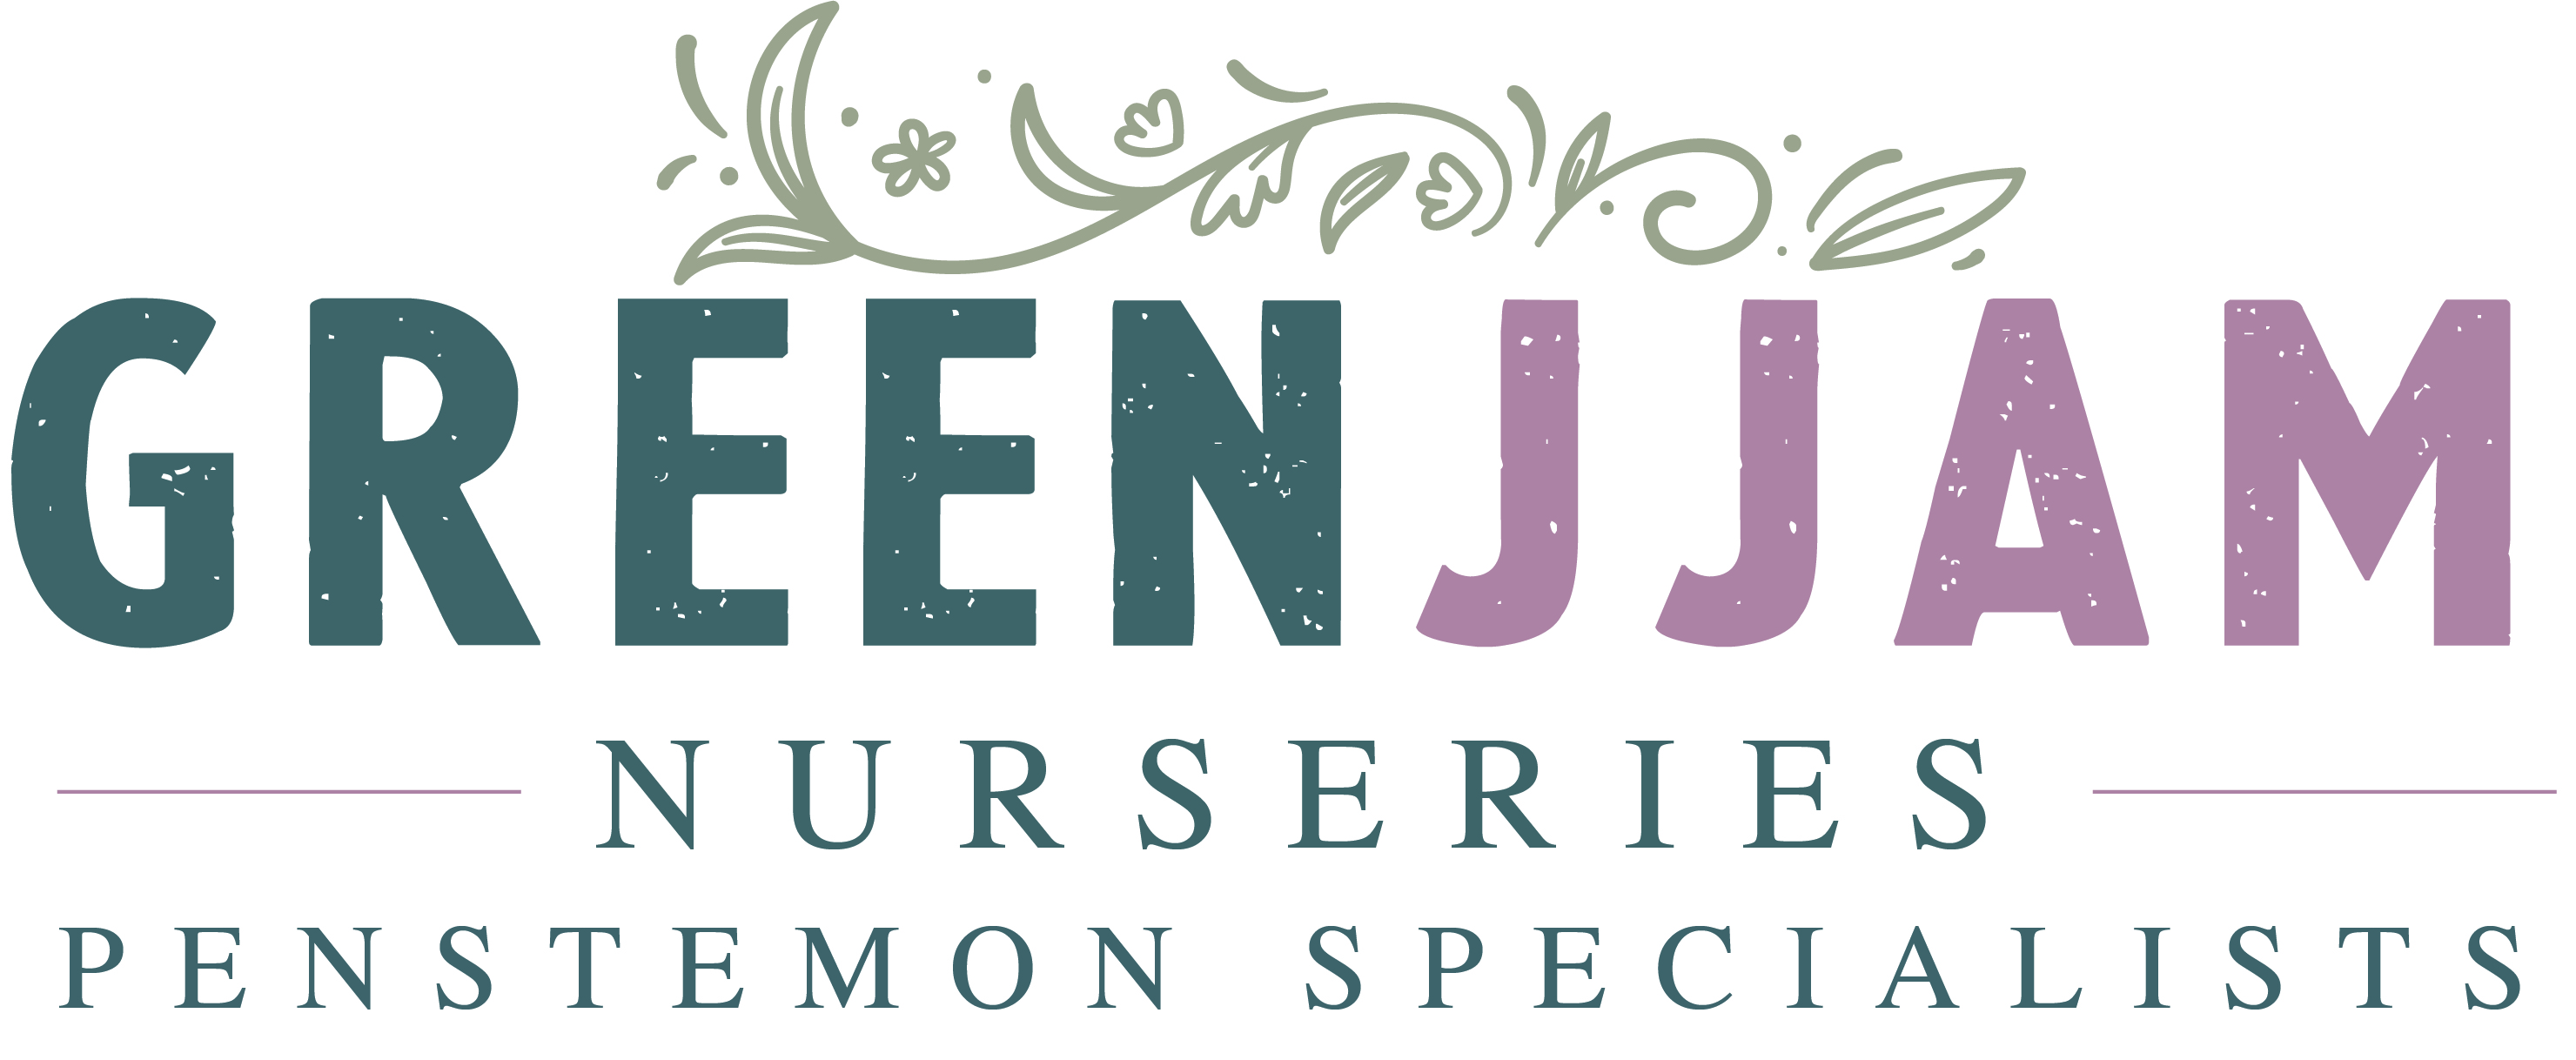 greenjjam nurseries